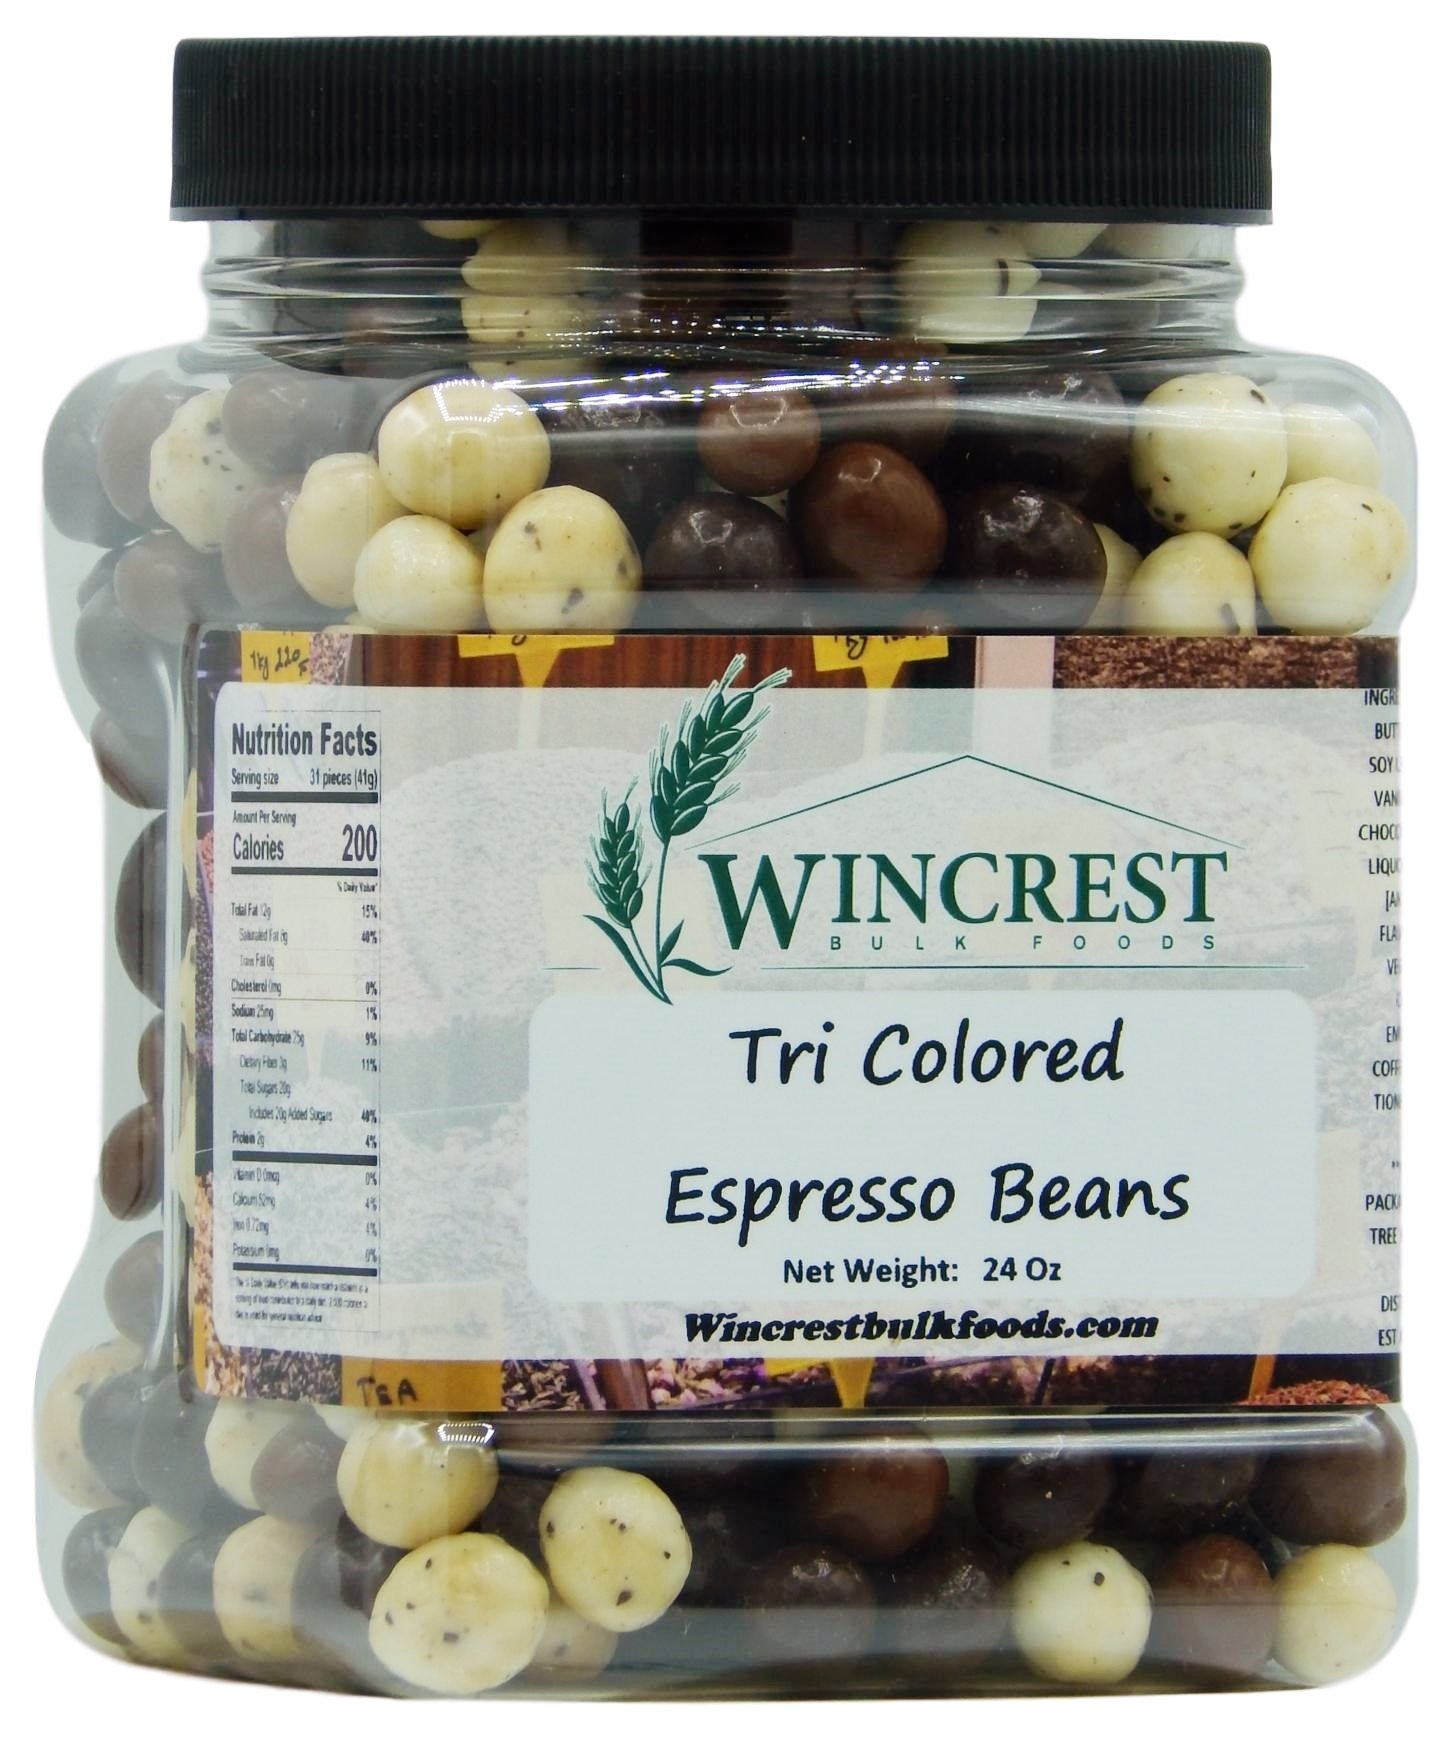 Chocolate Espresso Beans - 1.5 Lb Tub (Tri Colored) by WinCrest Bulk Foods